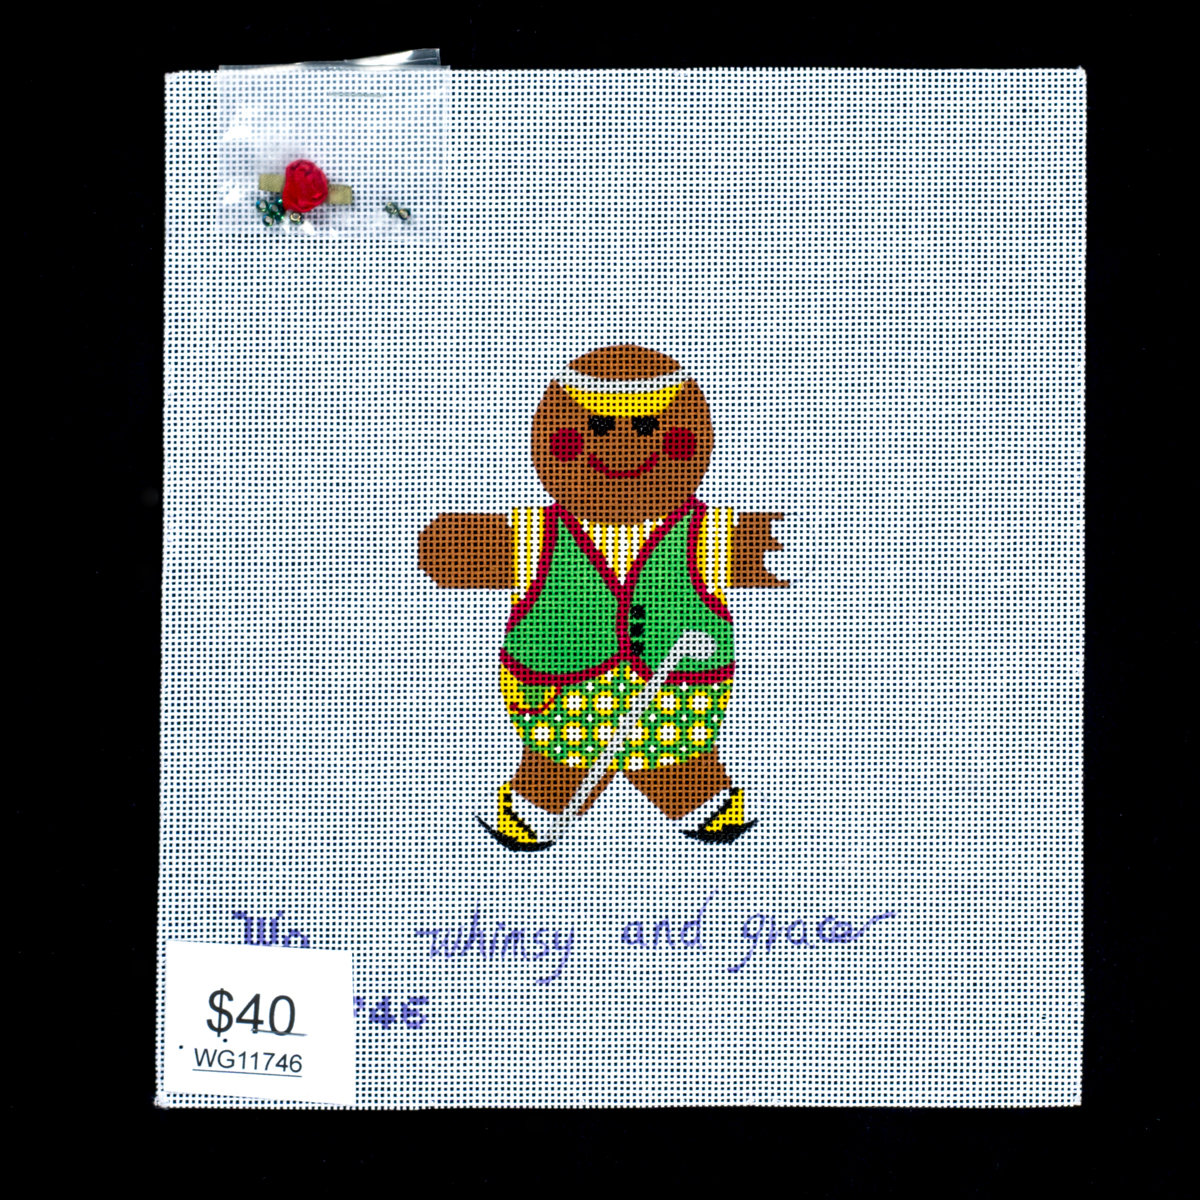 Whimsy & Grace, Golfing Gingerbread with embellishment, WG11746